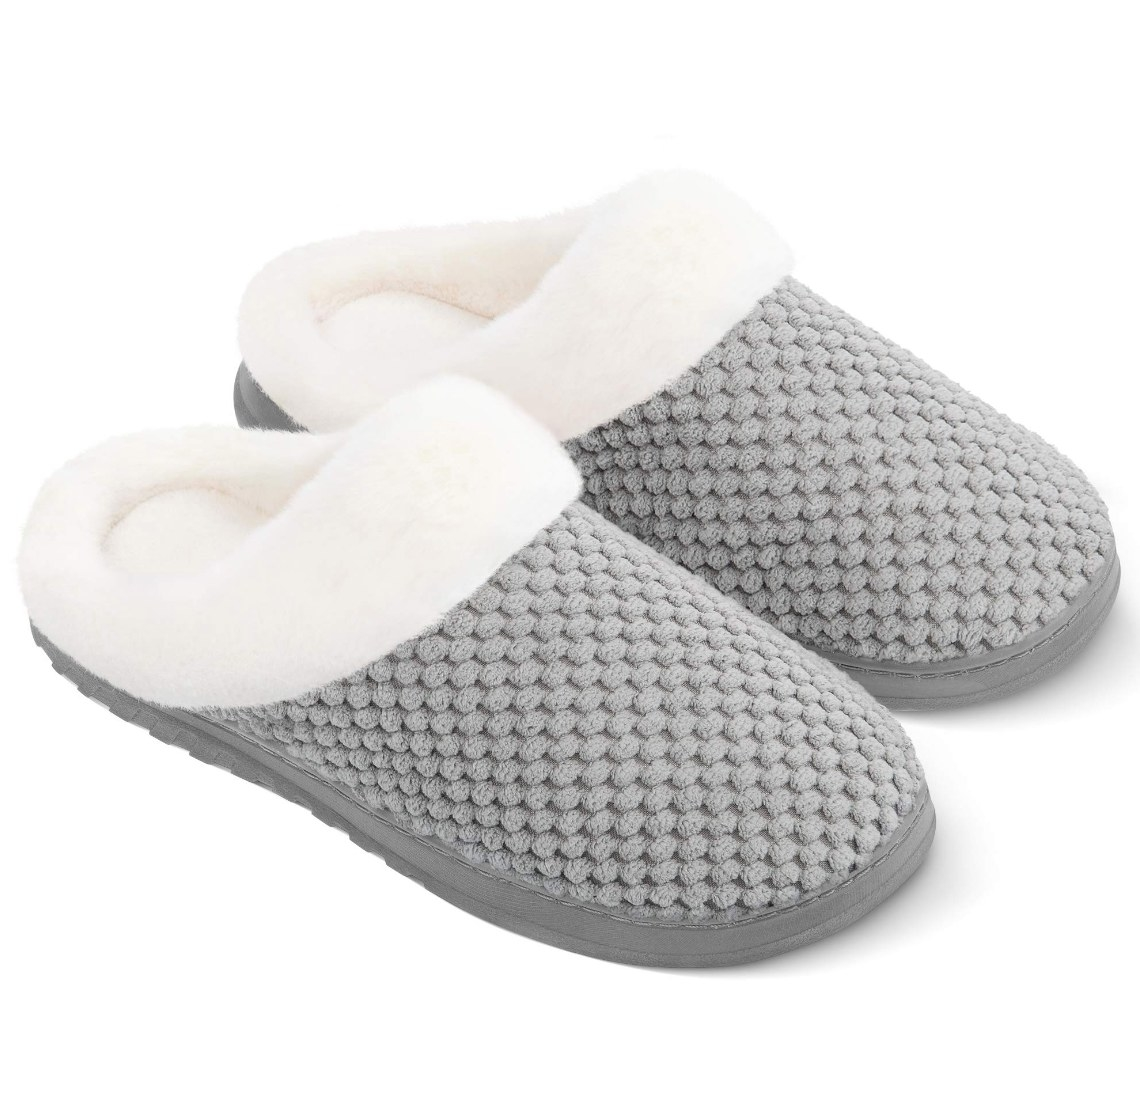 the slippers in gray